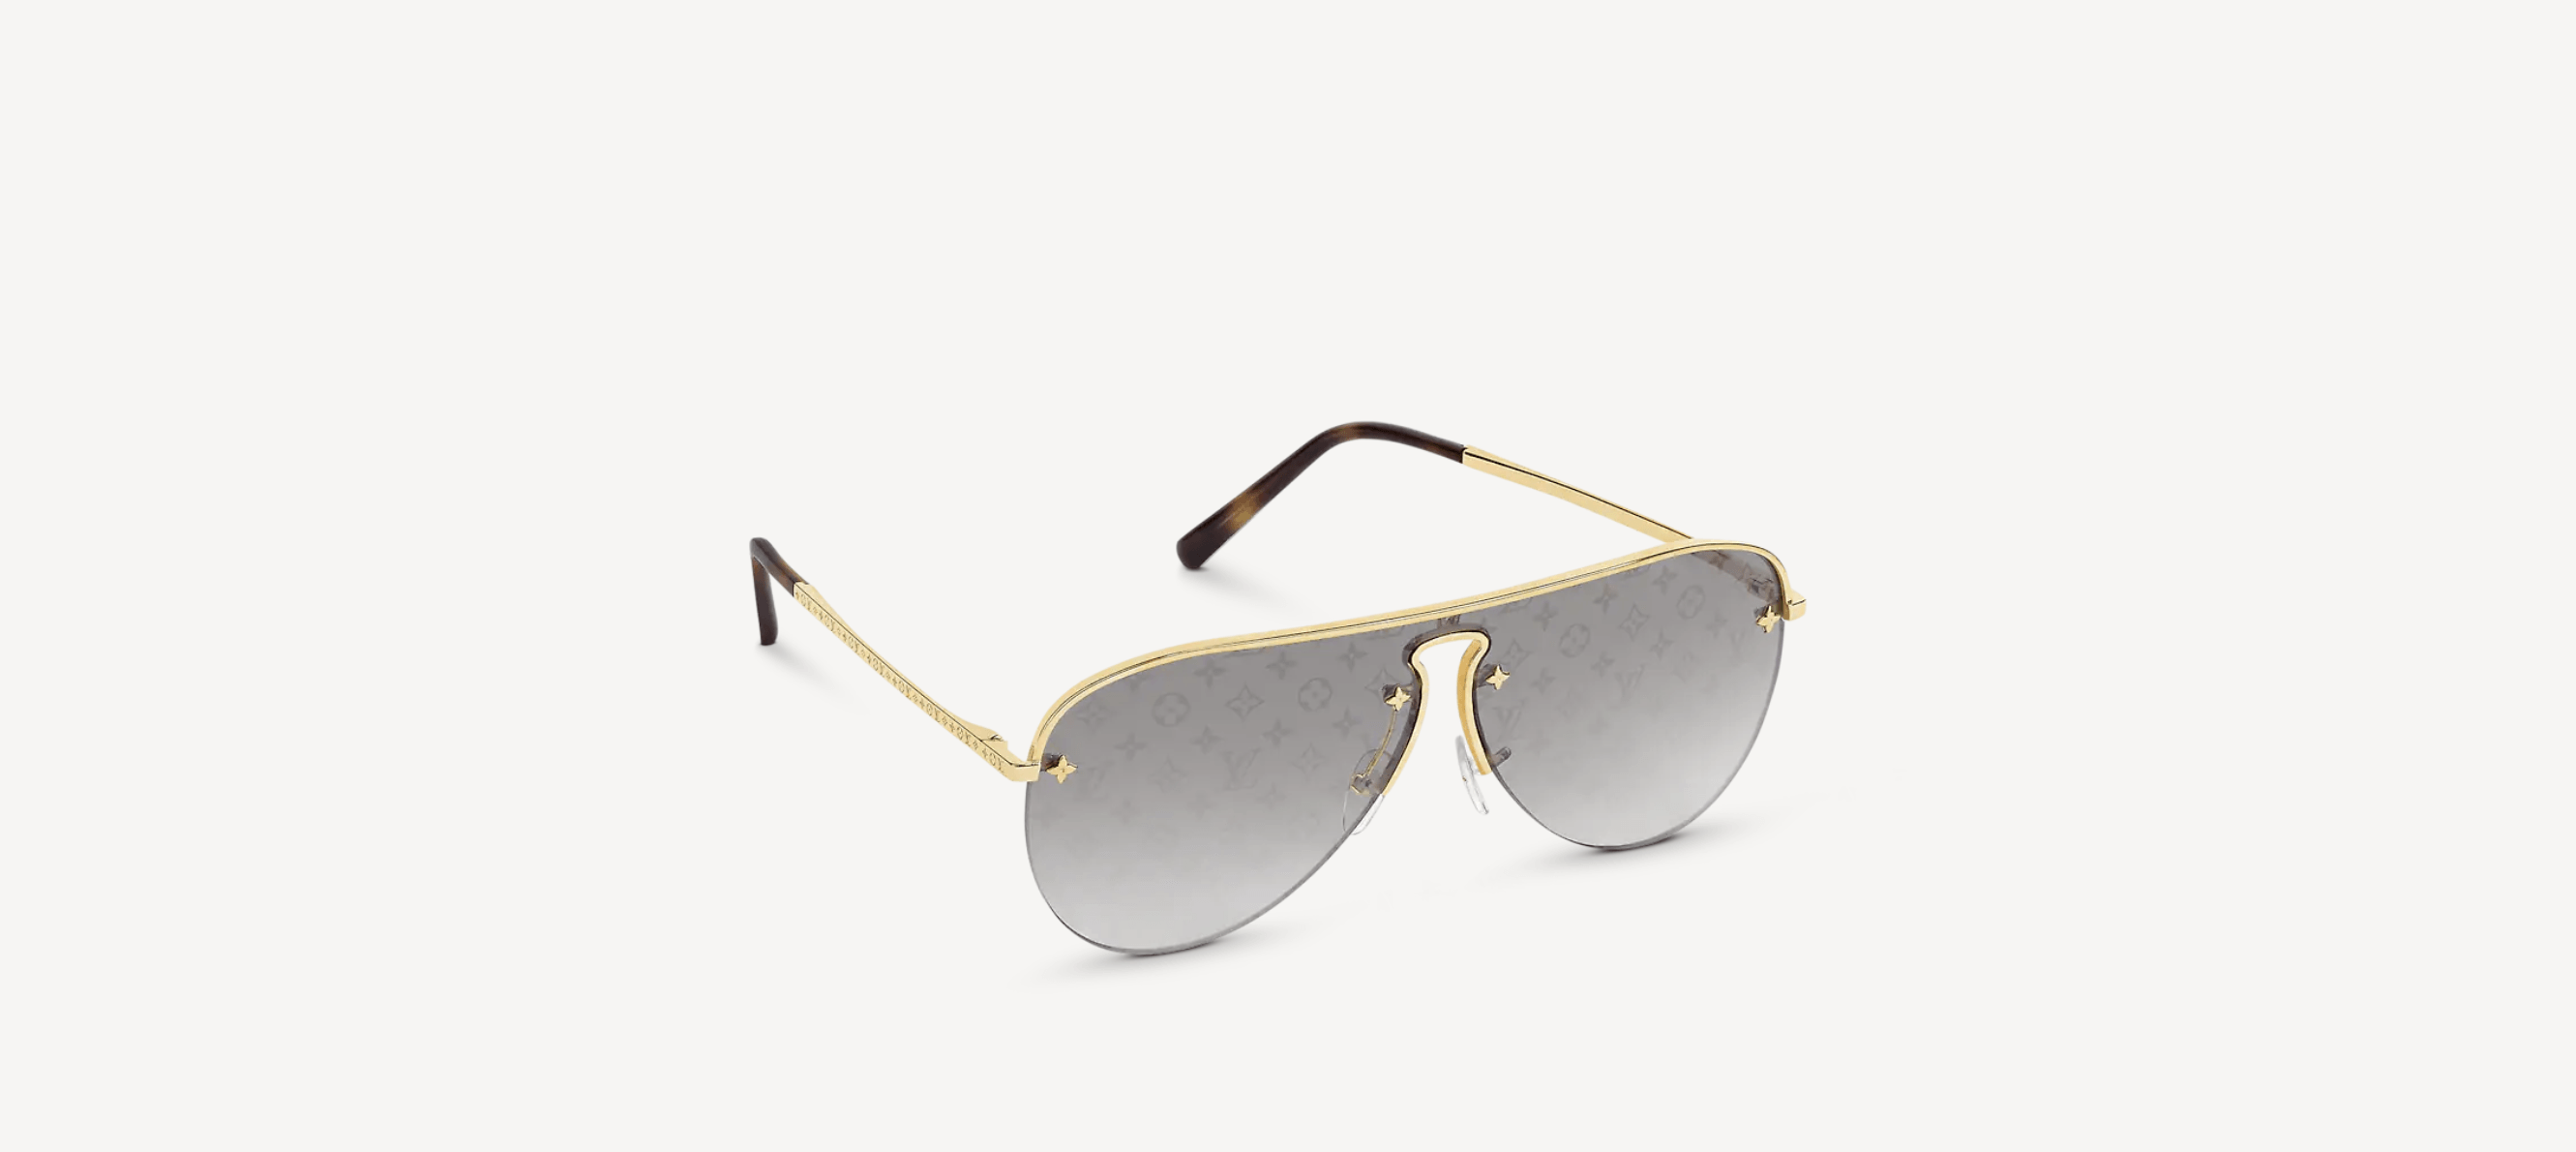 Louis Vuitton Sunglasses Grease Kate&You-ID10648